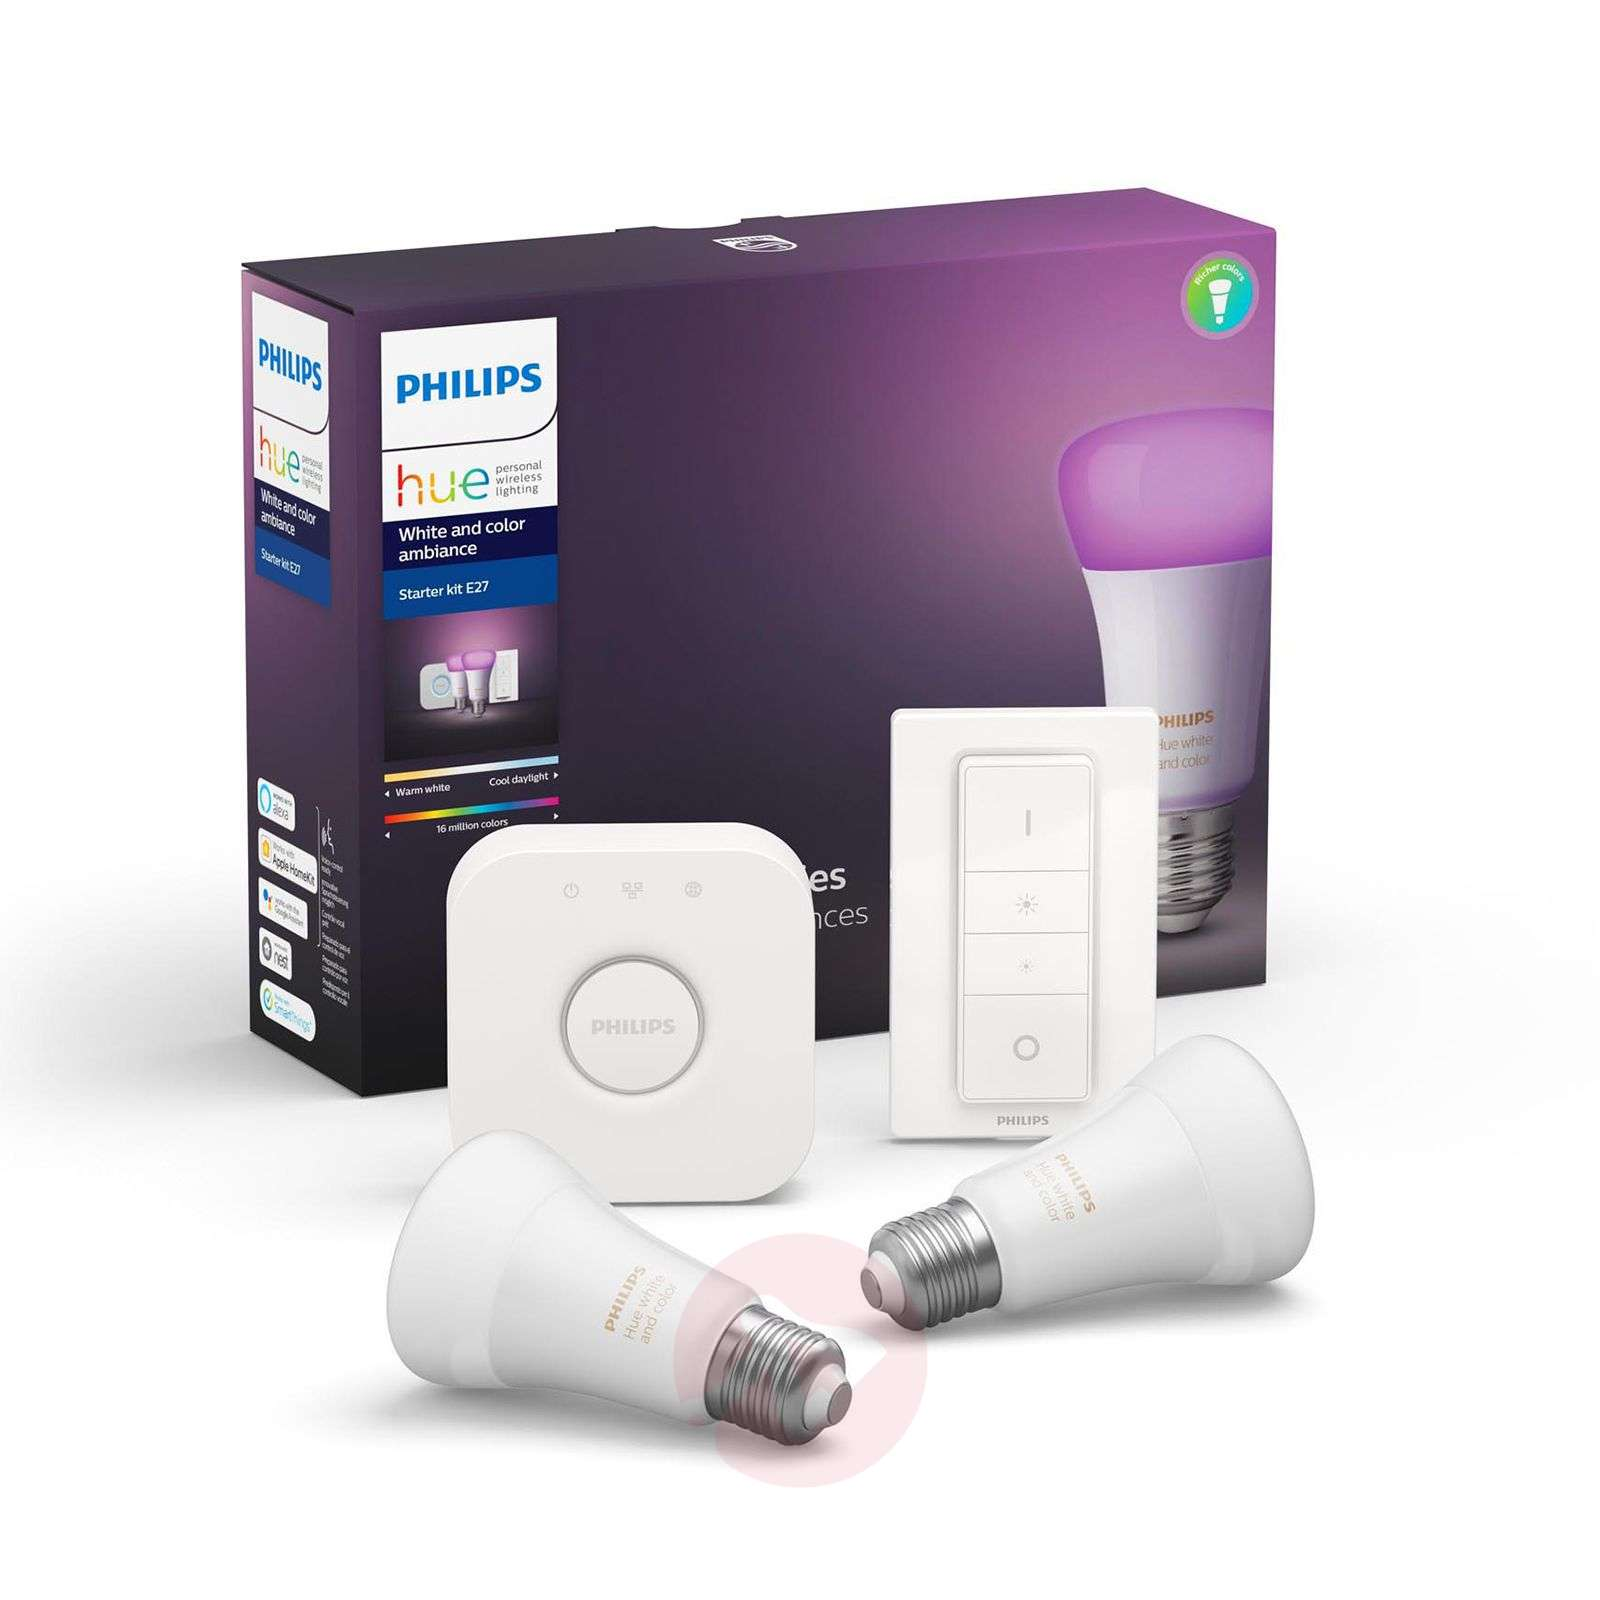 Philips Hue White and Color Ambiance E27 démarrage-7534165-01